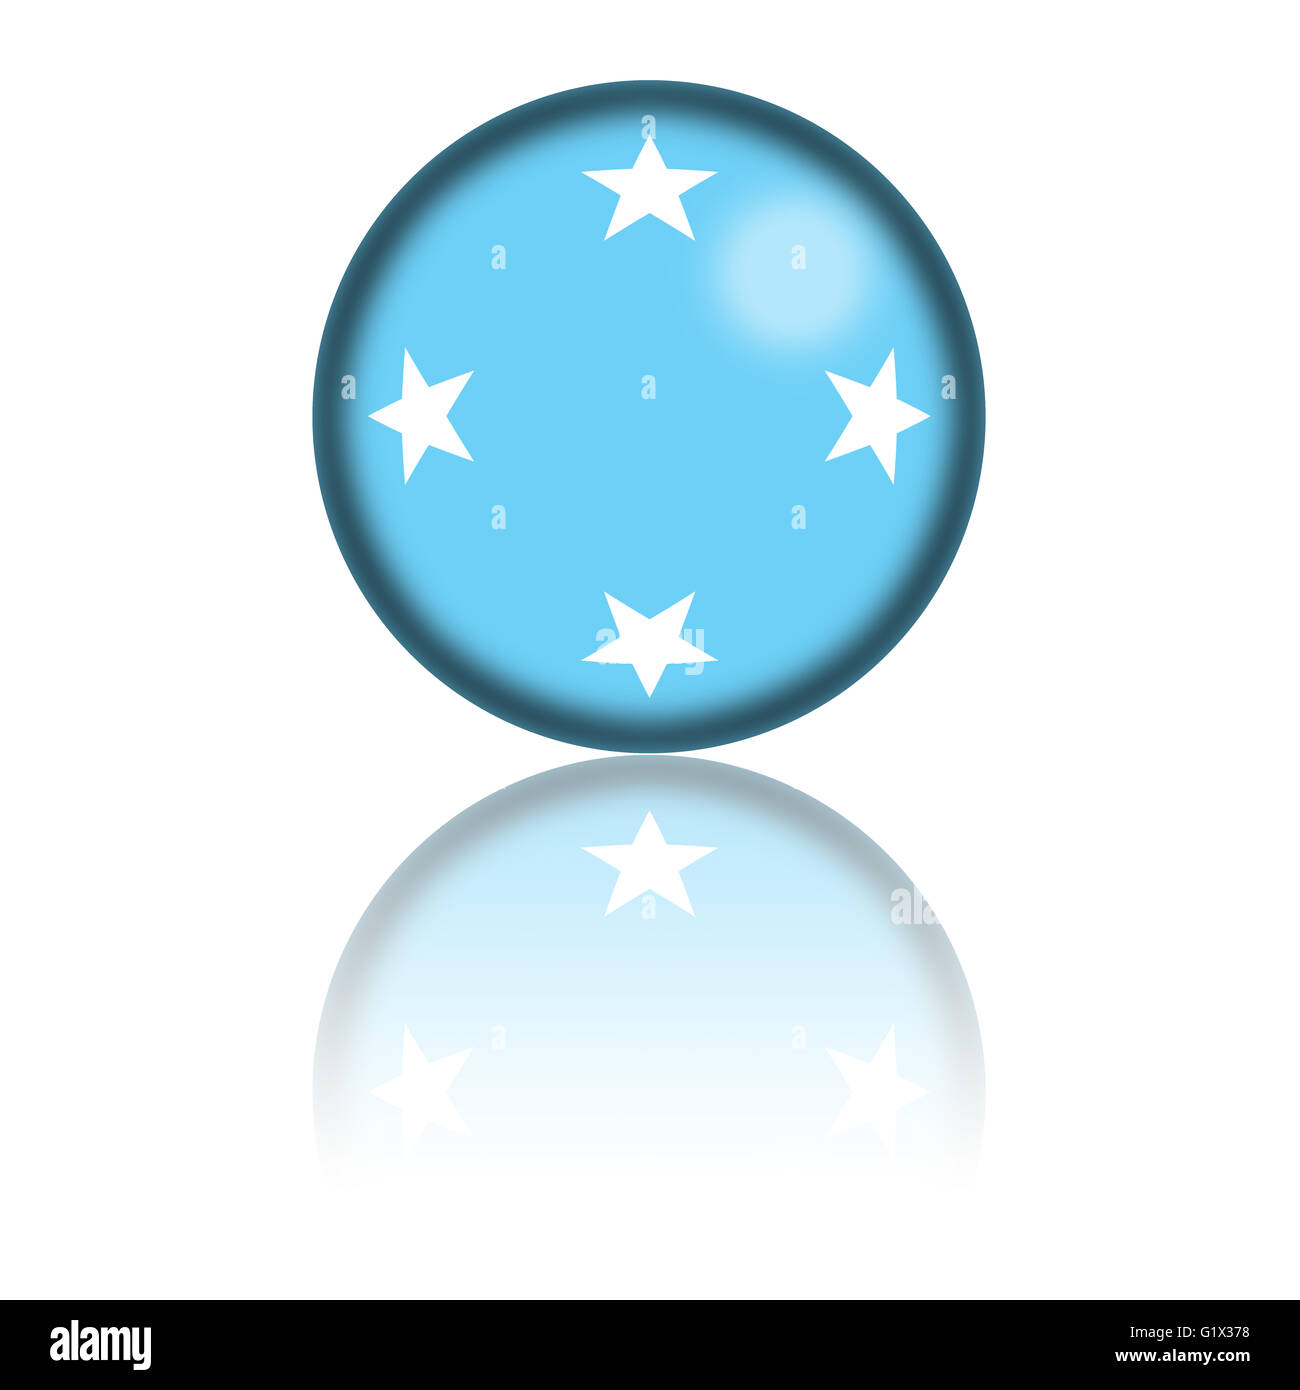 Sphere of Micronesia flag with reflection at bottom. - Stock Image